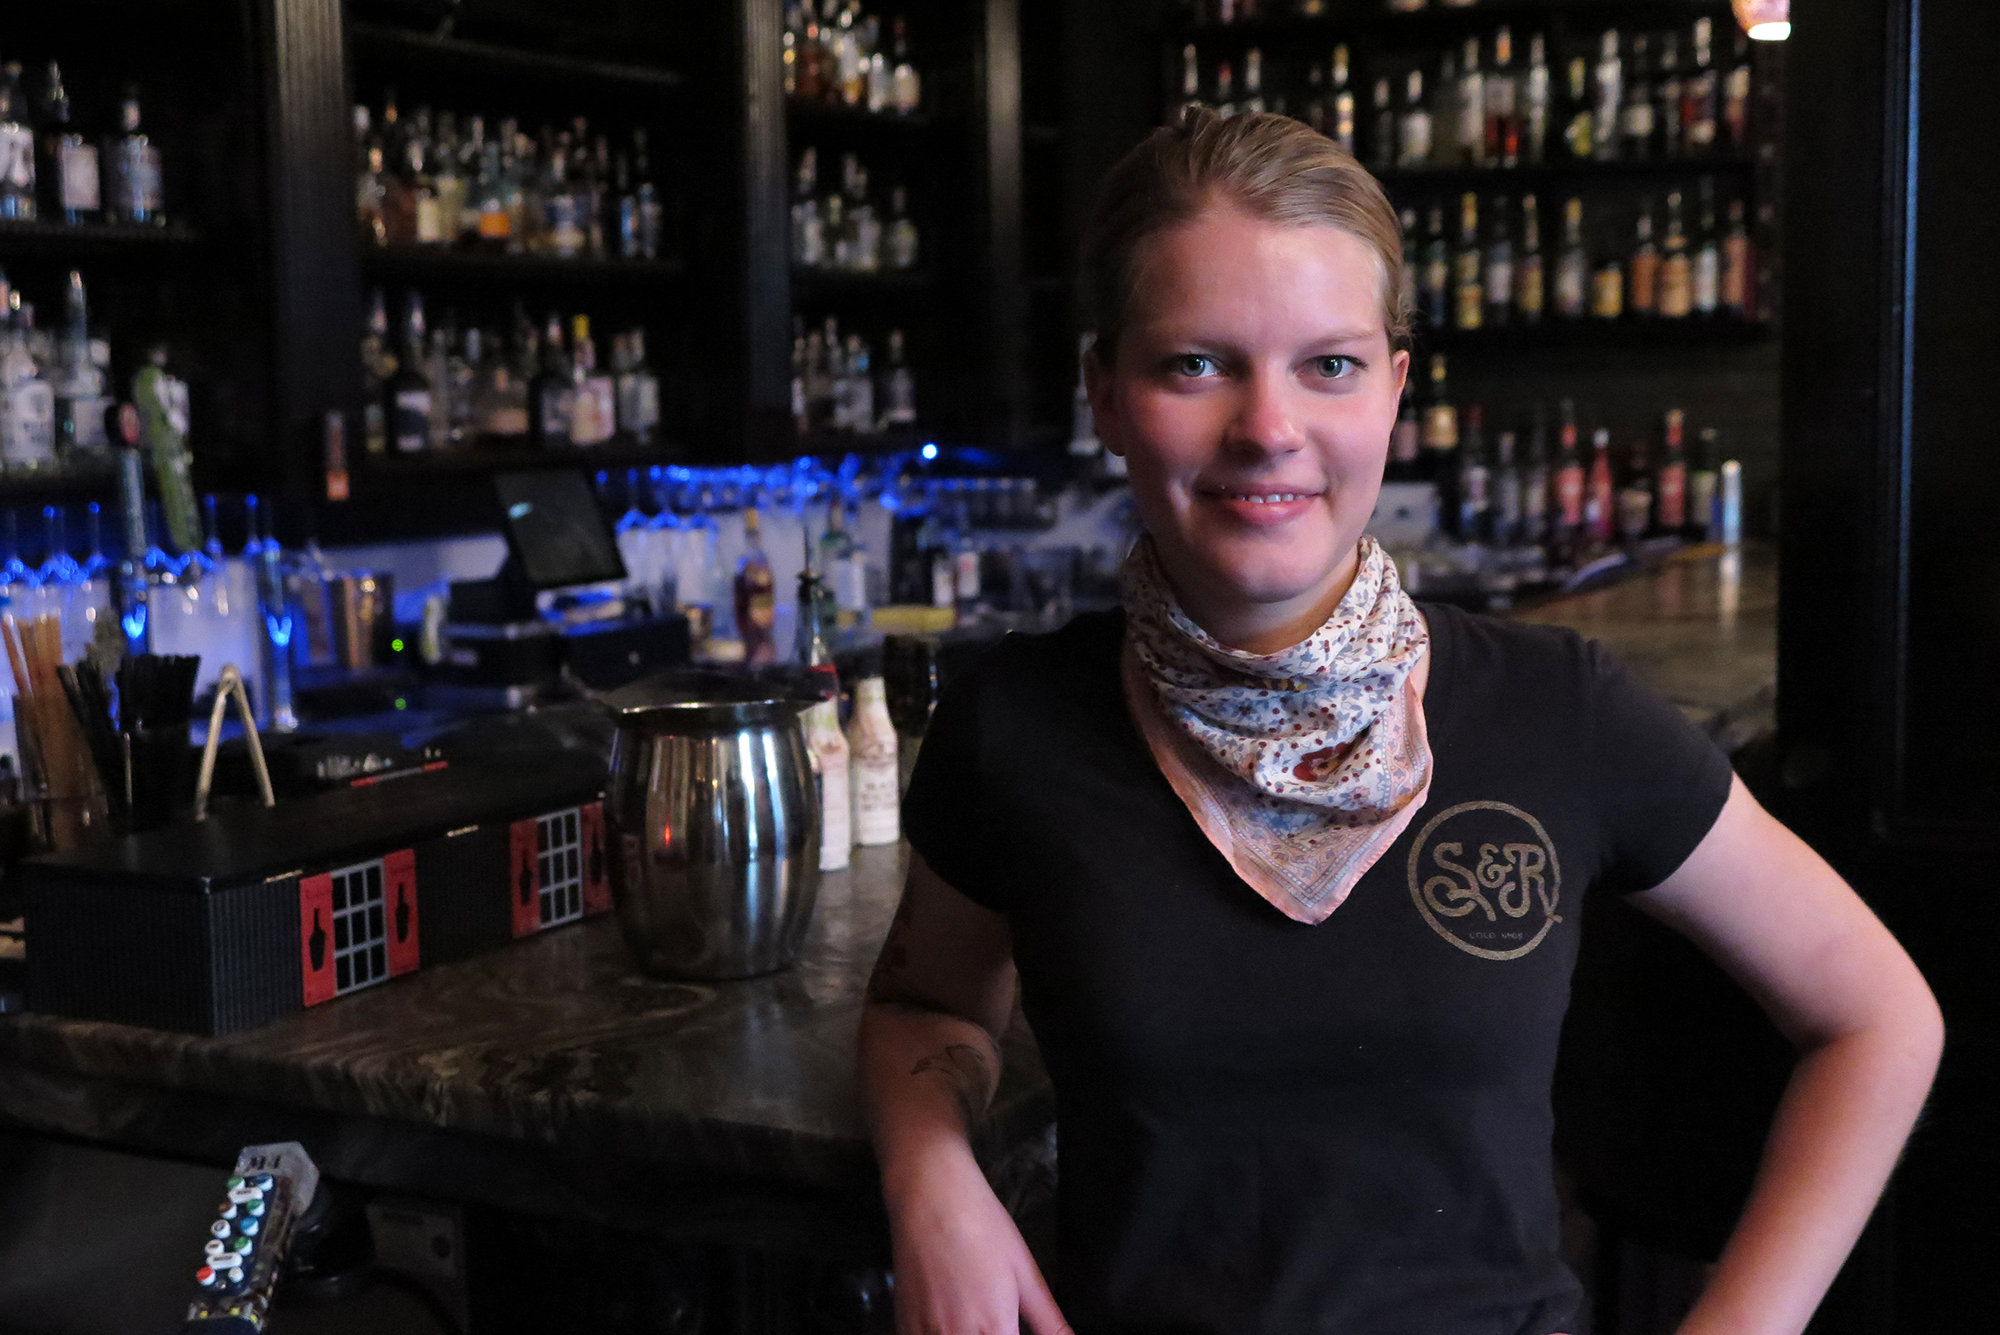 Clothing boutique owner Rebecca Moon is working two days a week at the Colorado Springs bar Shame and Regret to make ends meet.